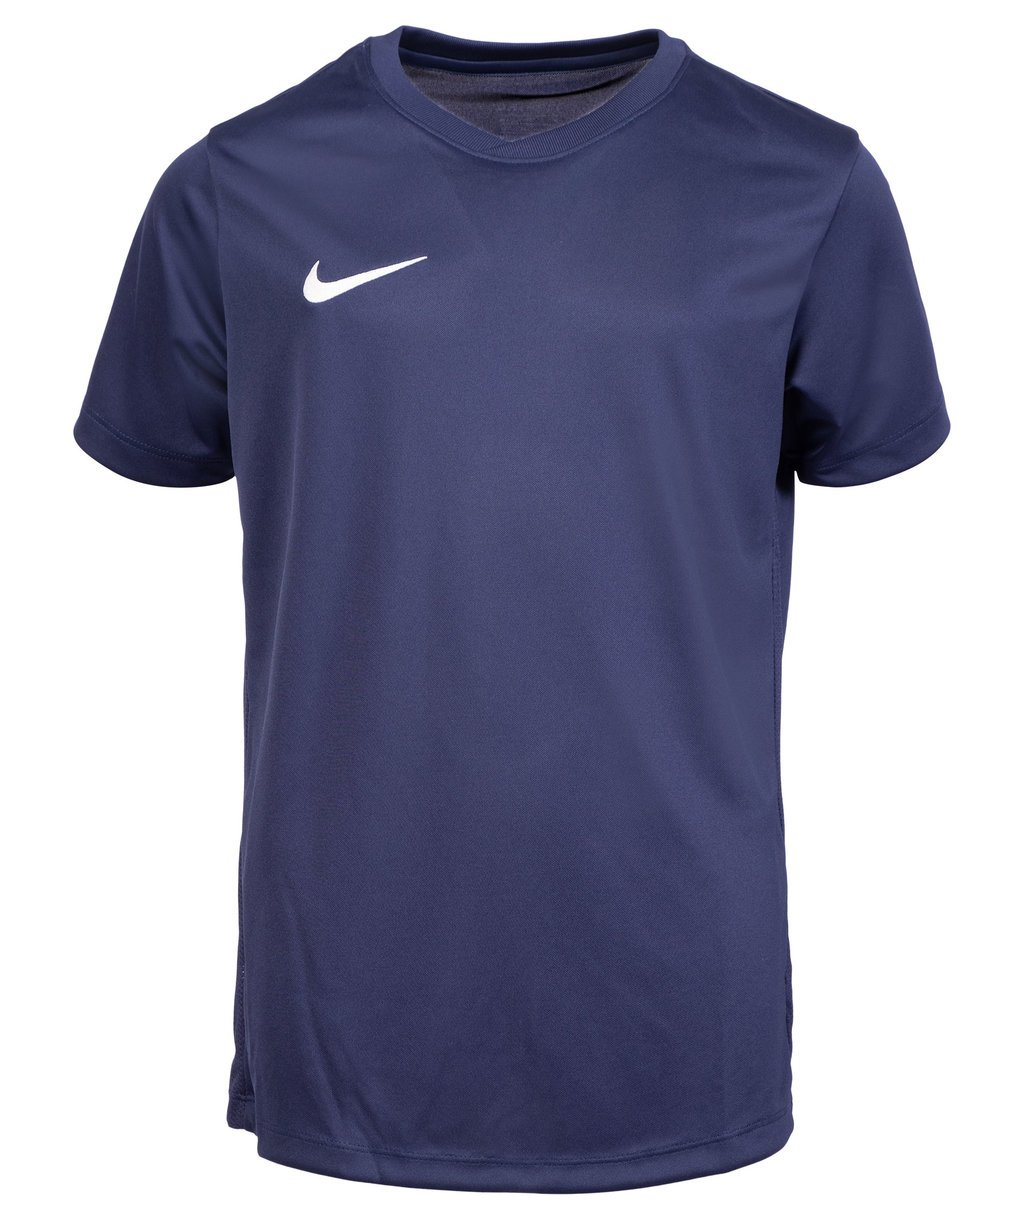 Nike Park VI T-skjorte for barn, Navy